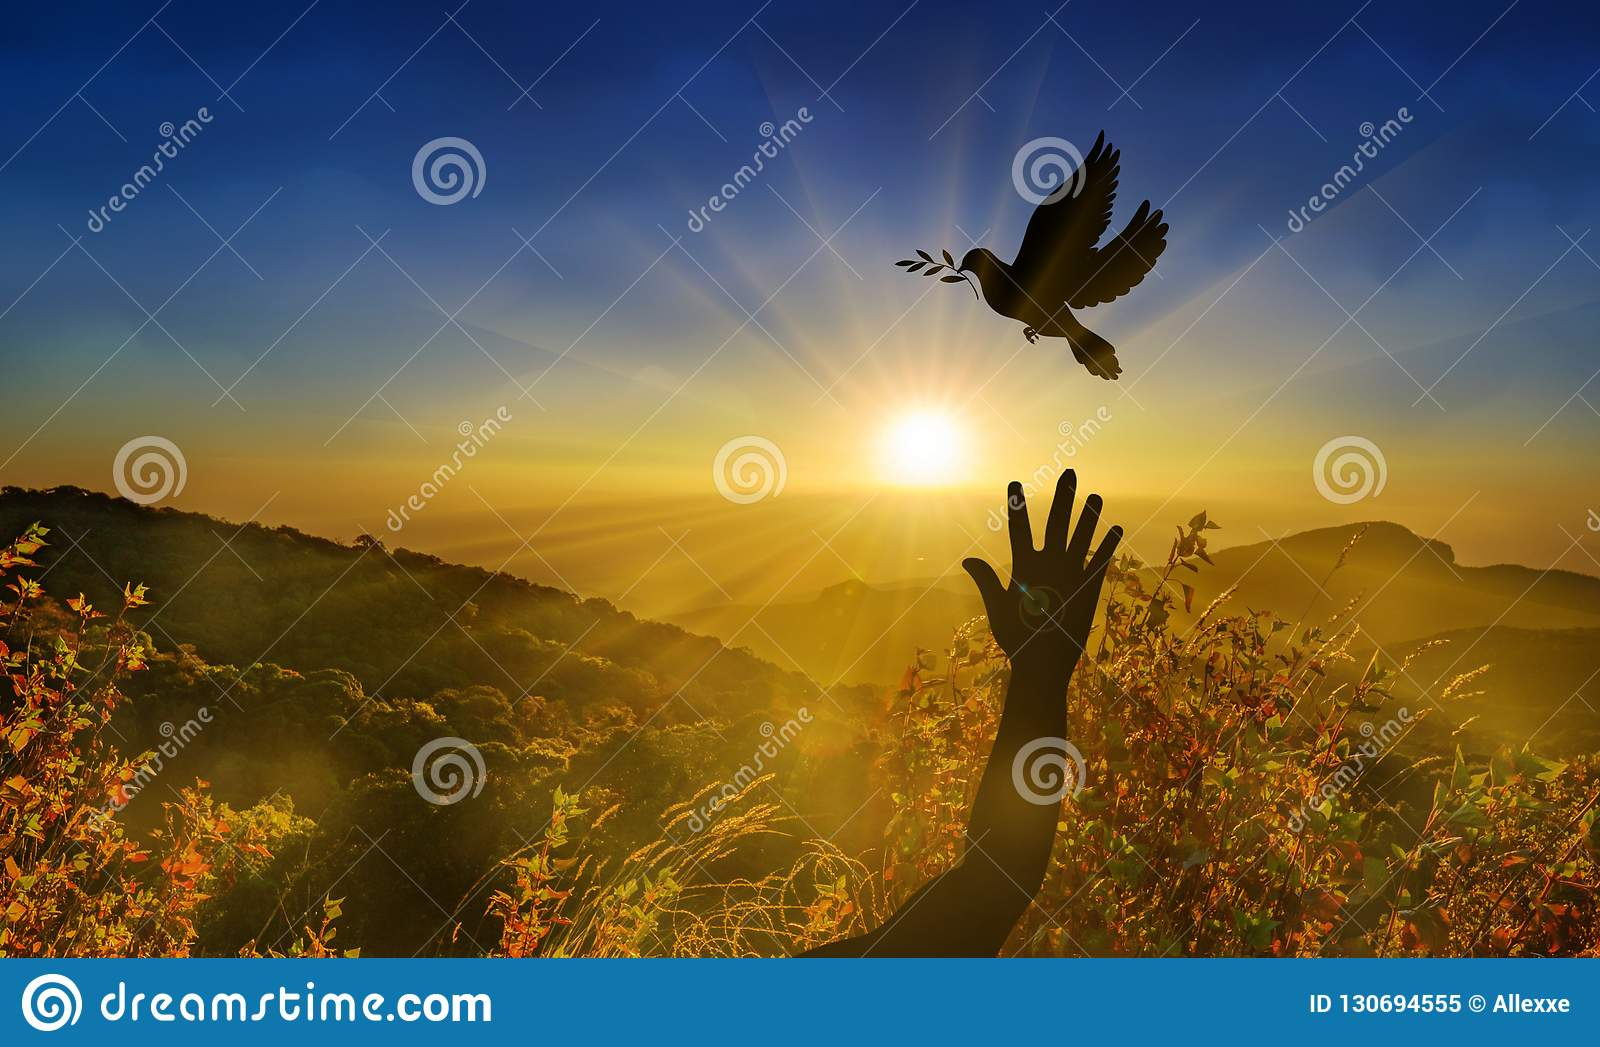 Freedom, peace and spirituality pigeon with olive branch